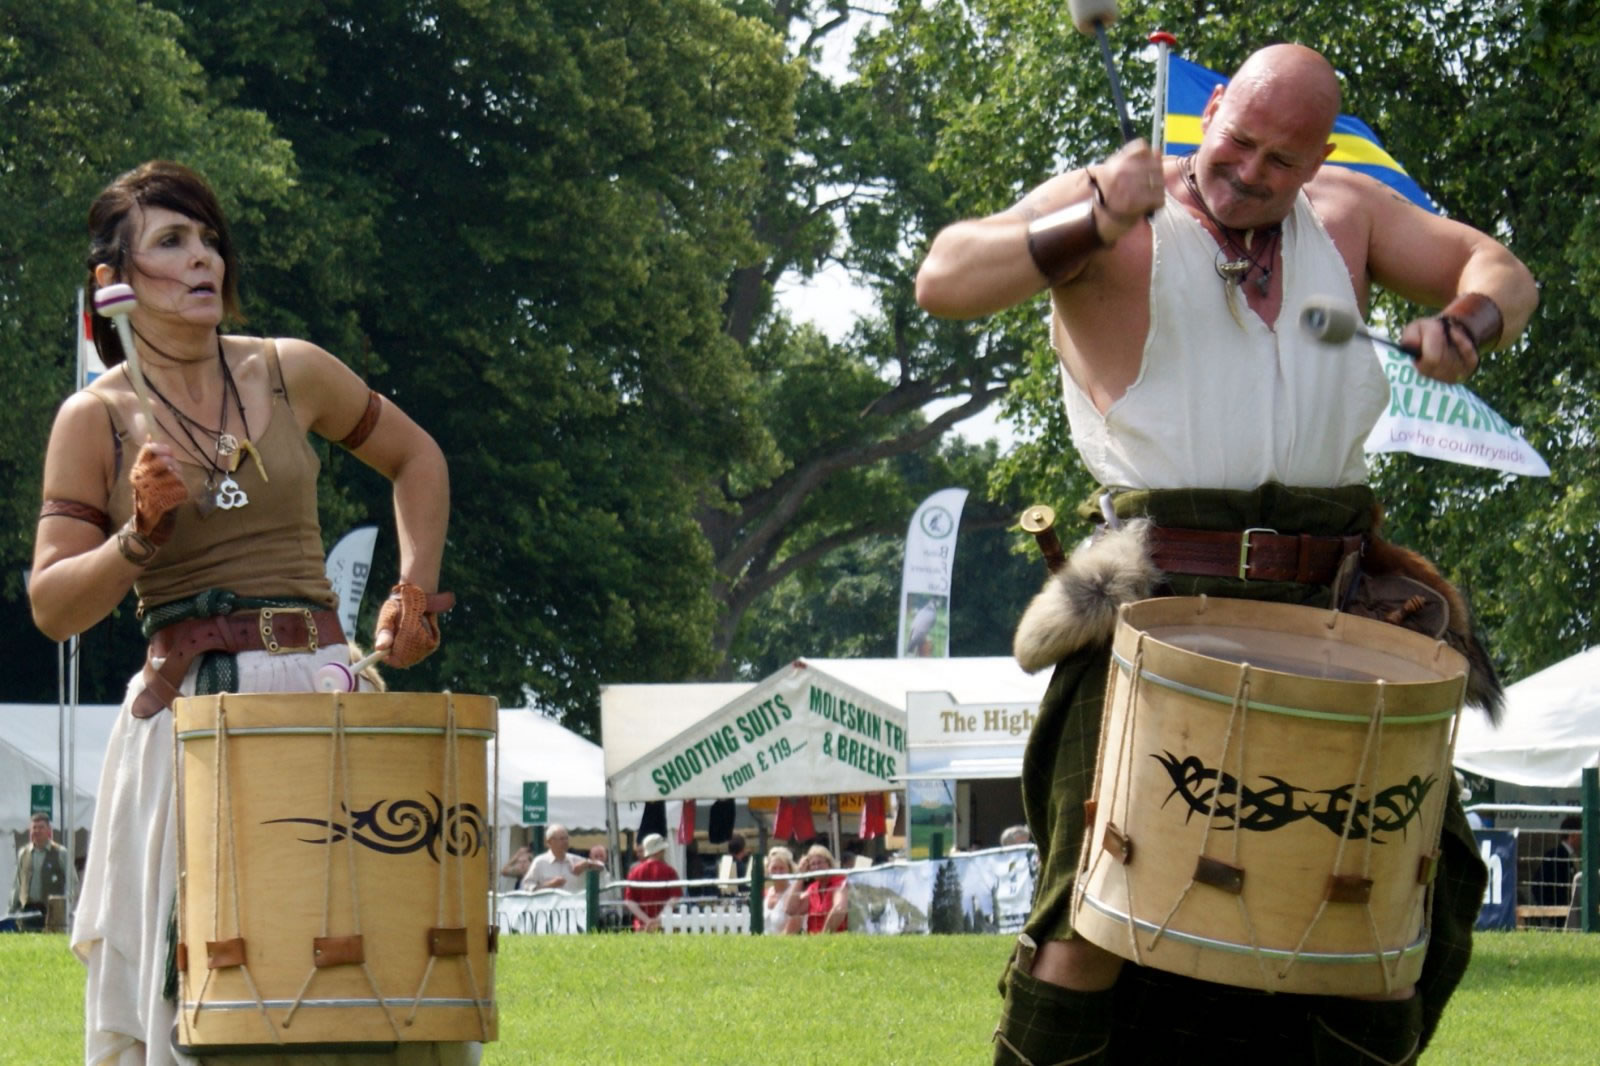 The Scottish Game Fair is a true celebration of the countryside - fun for all ages.